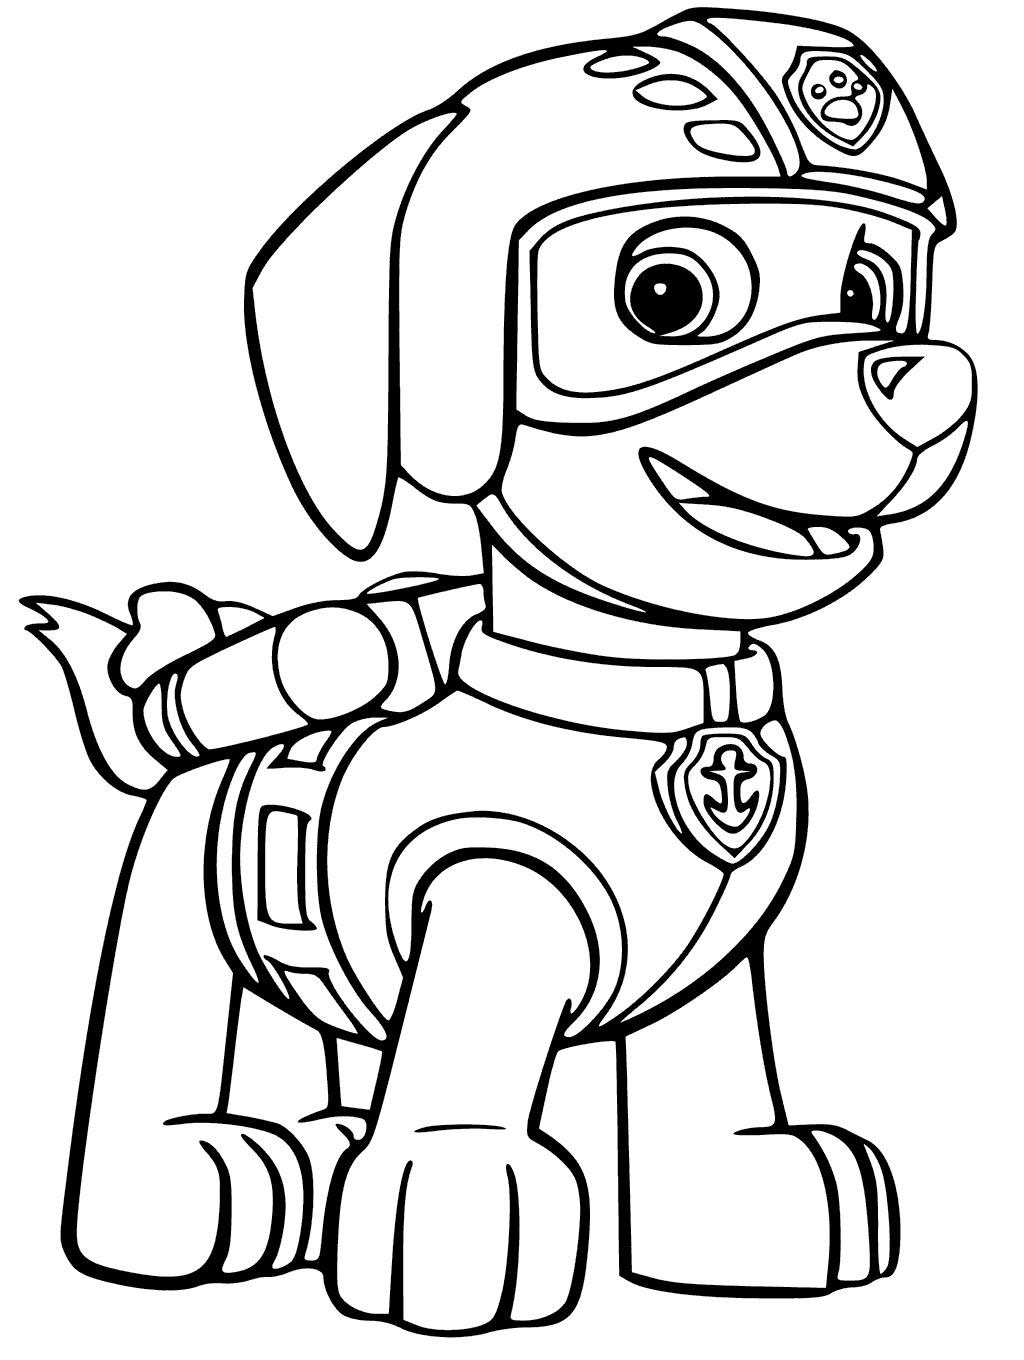 paw patrol coloring pages paw patrol coloring page all characters print color craft pages coloring paw patrol